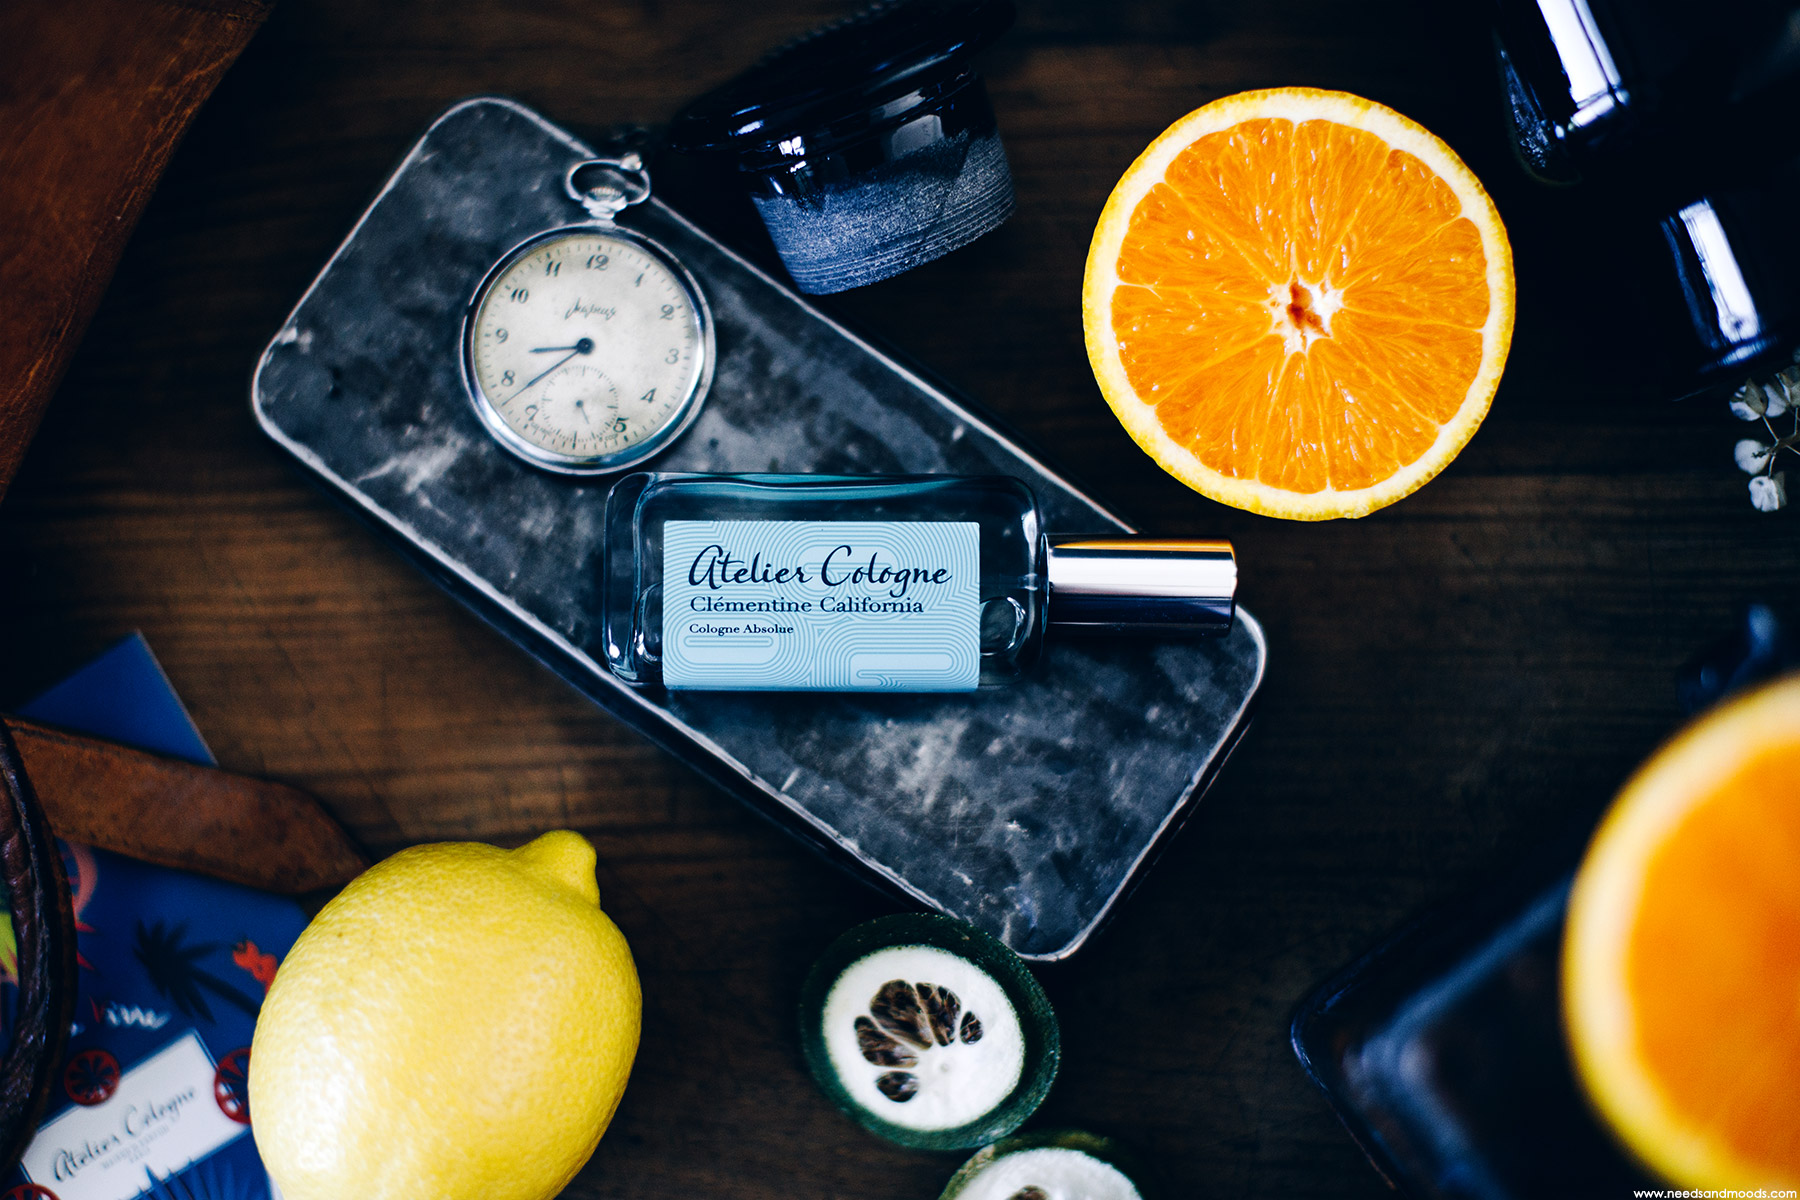 clementine california atelier cologne